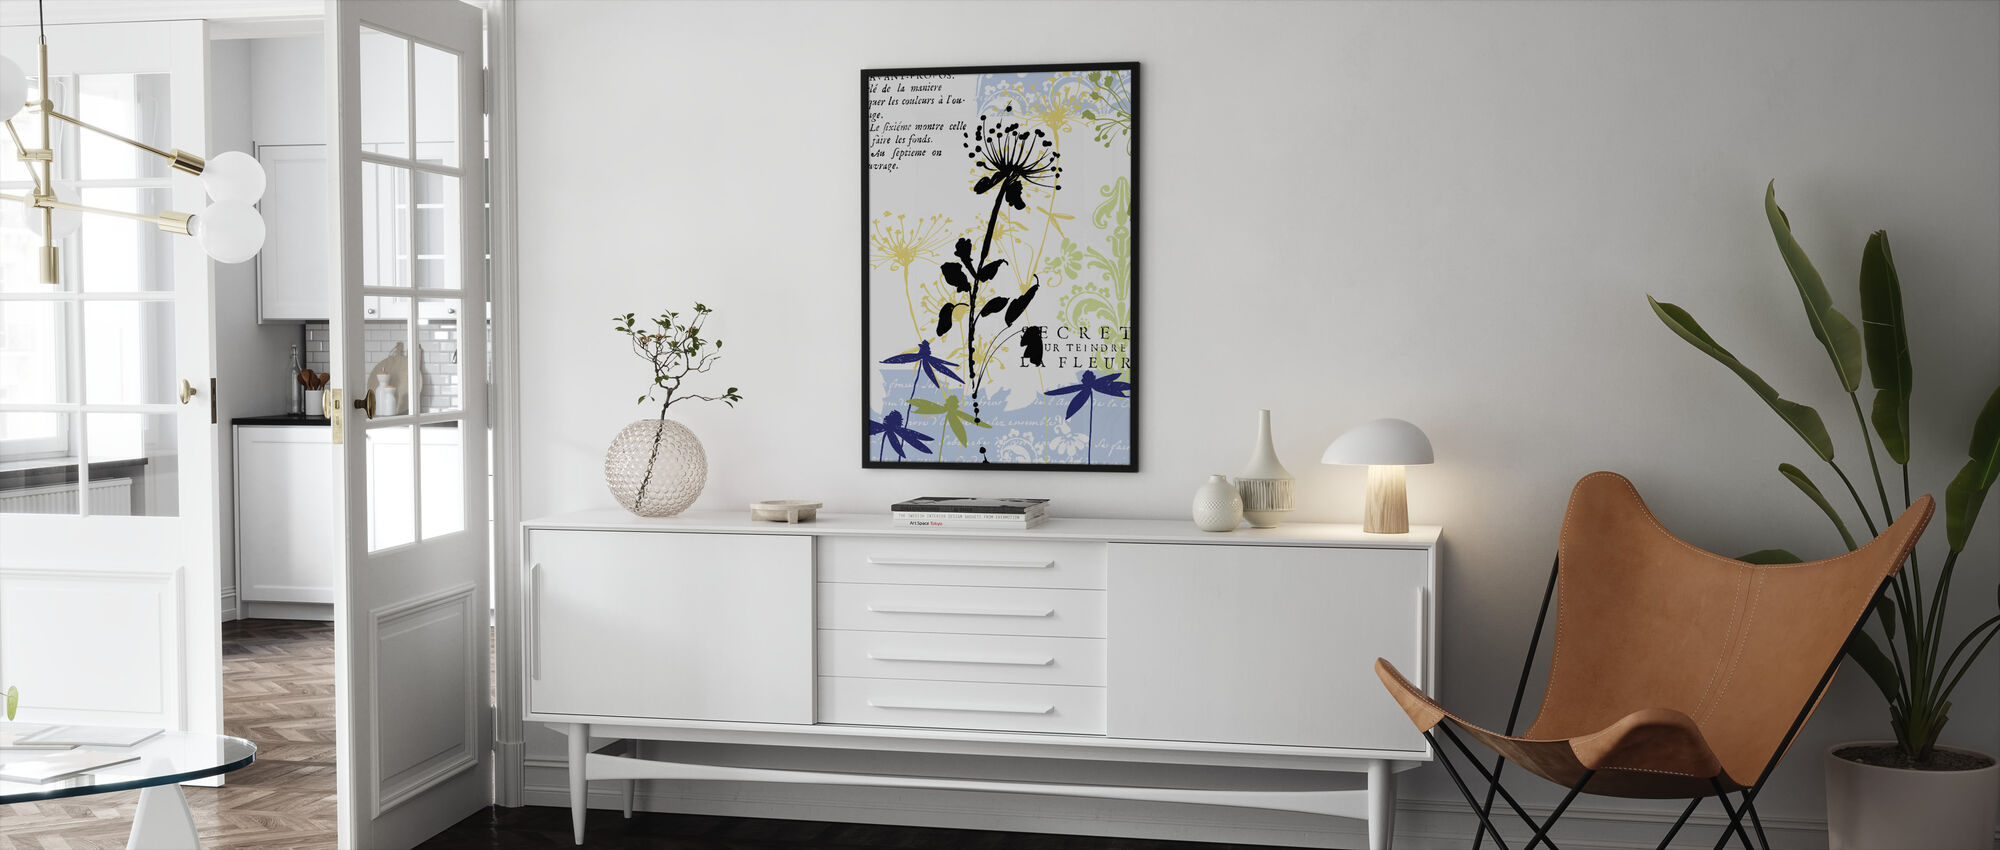 Funky Botanical II - Framed print - Living Room